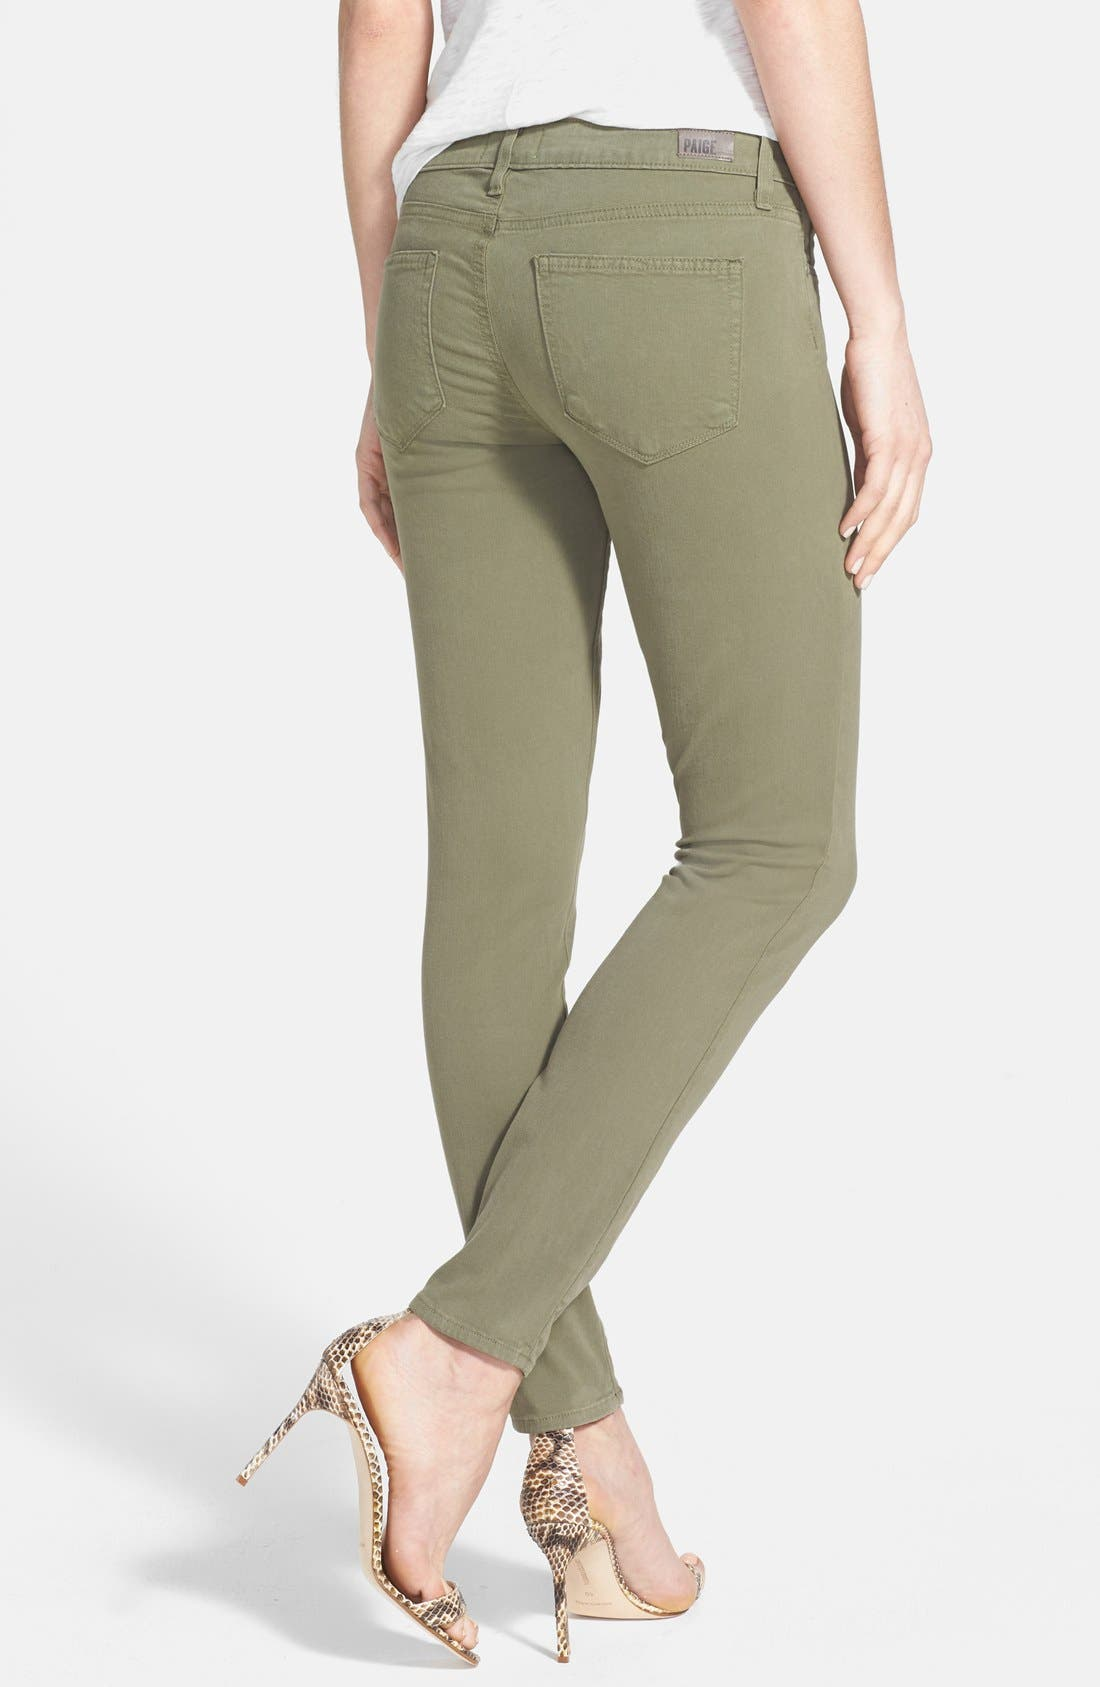 Alternate Image 2  - Paige Denim 'Verdugo' Ankle Skinny Jeans (Fatigue Green)